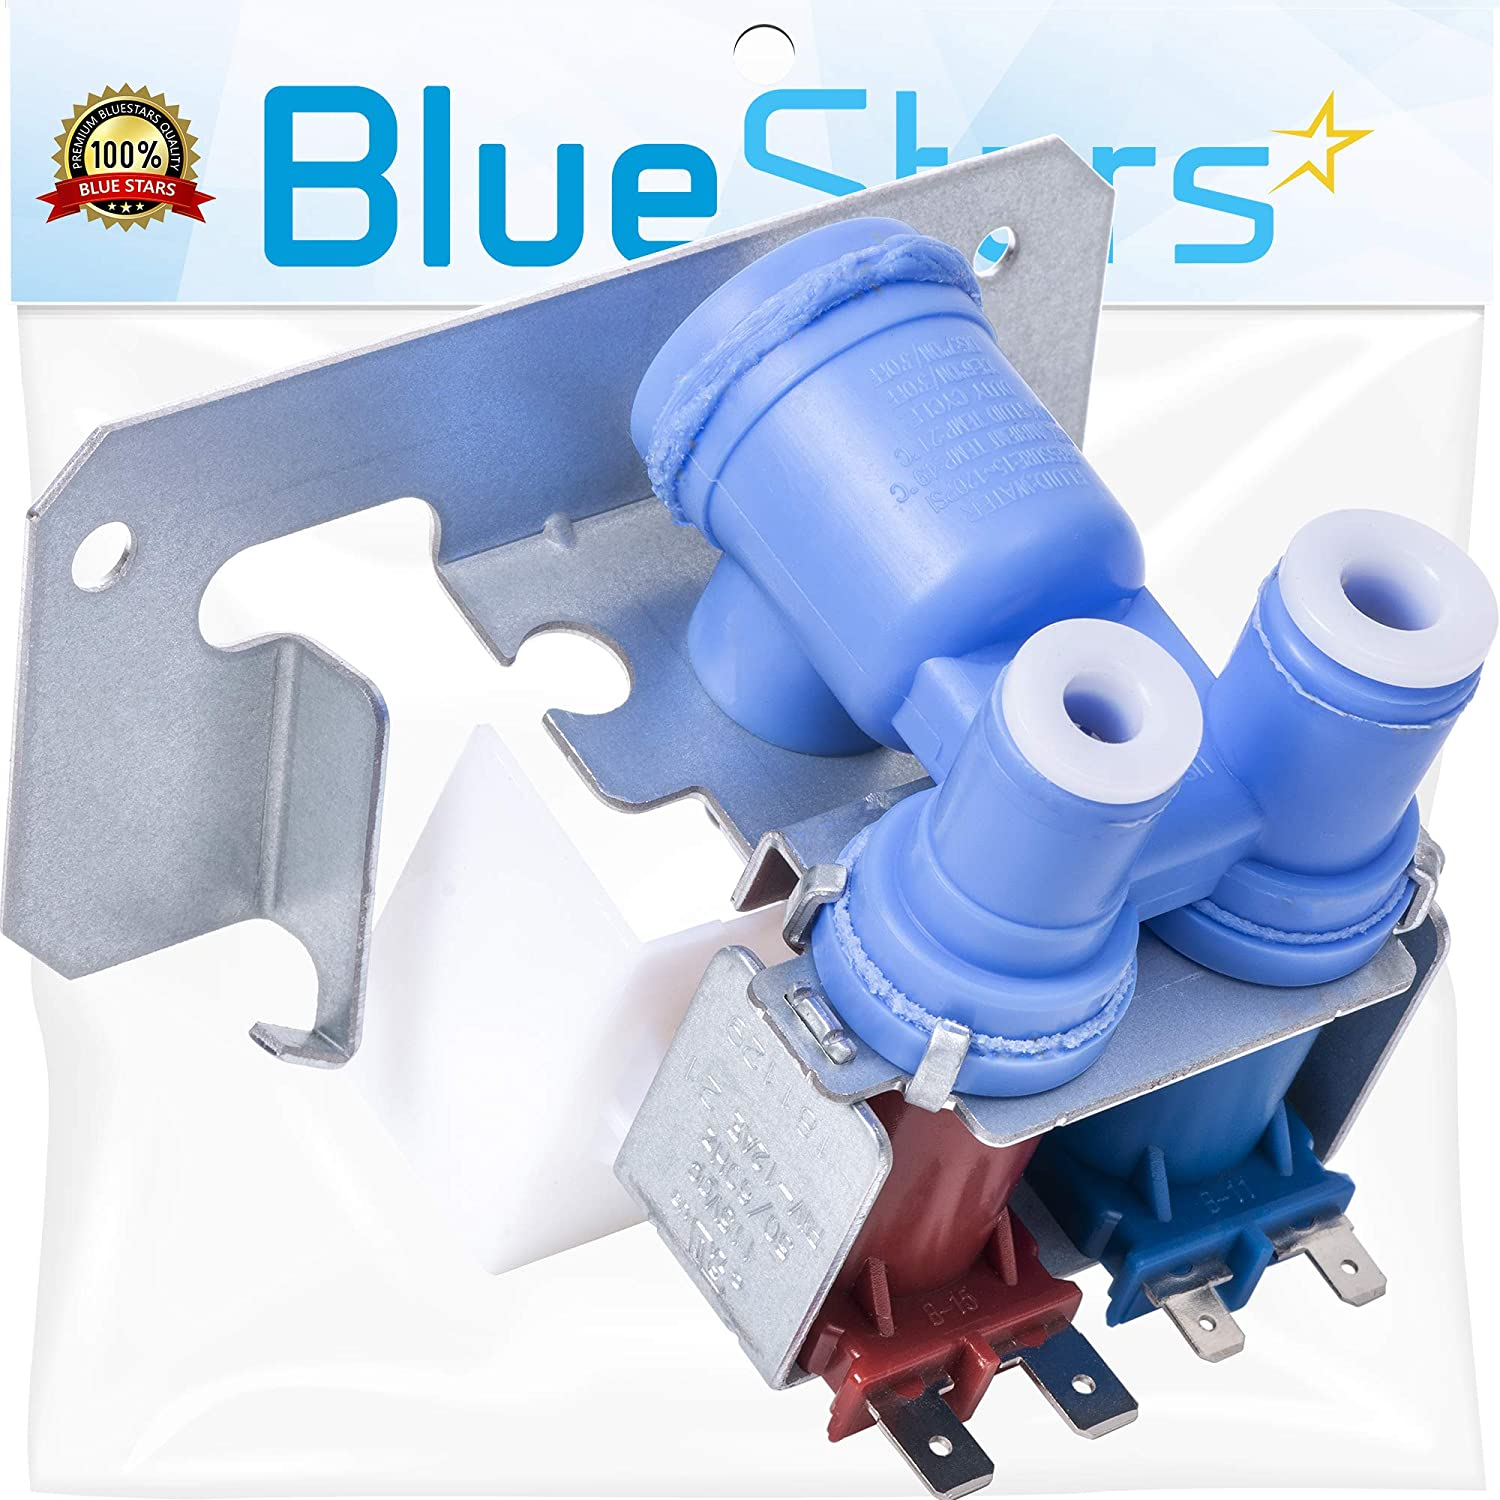 Ultra Durable WR57X10051 Refrigerator Dual Inlet Water Valve Replacement part by Blue Stars - Exact Fit for Whirlpool & Kenmore Refrigerators - Replaces 1032629, 66048, AP3672839, WR02X10105, WR2X1010